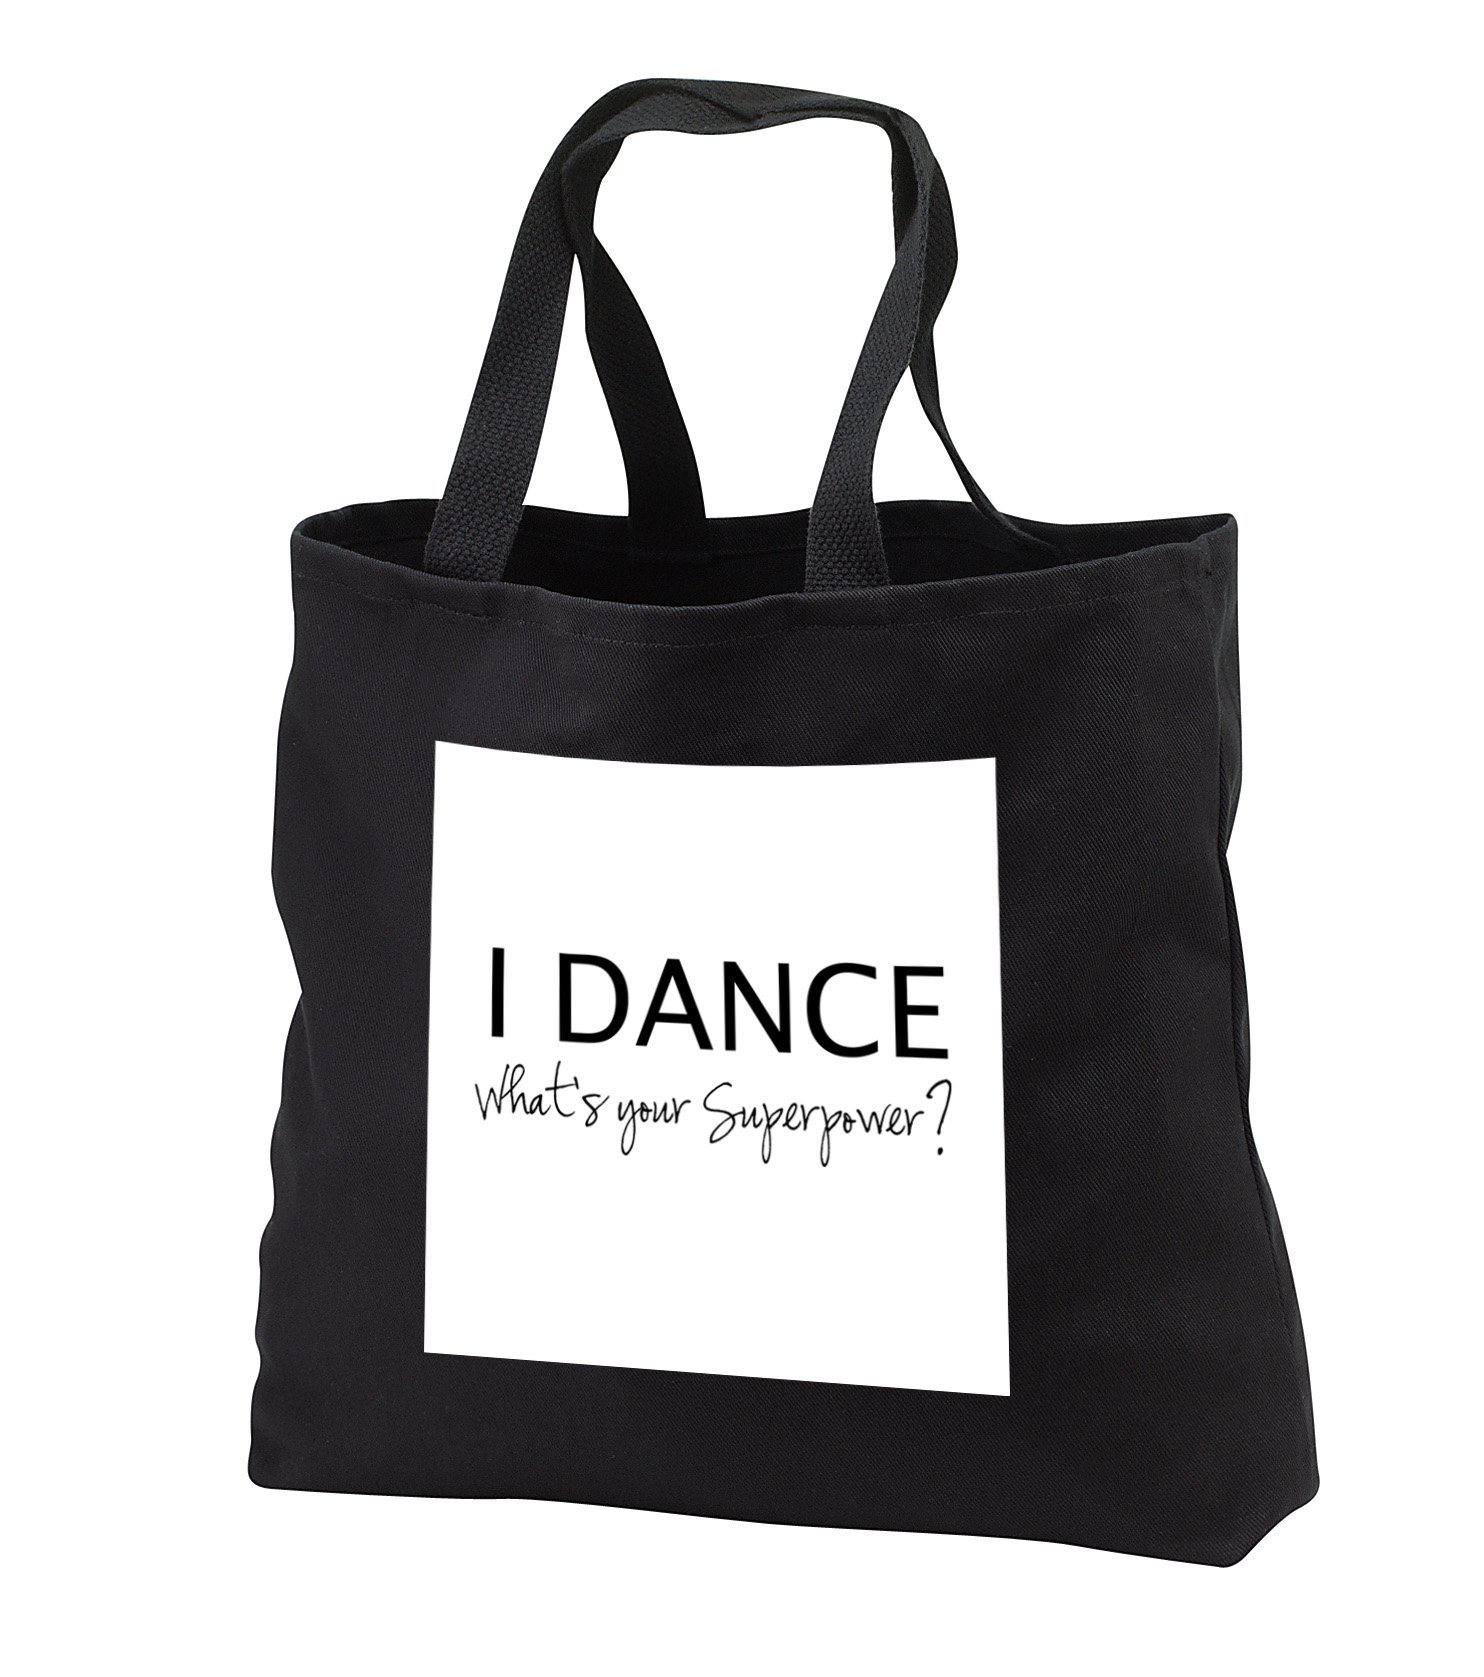 InspirationzStore Typography - I Dance - Whats your Superpower - funny dancing love gift for dancers - Tote Bags - Black Tote Bag JUMBO 20w x 15h x 5d (tb_184941_3)